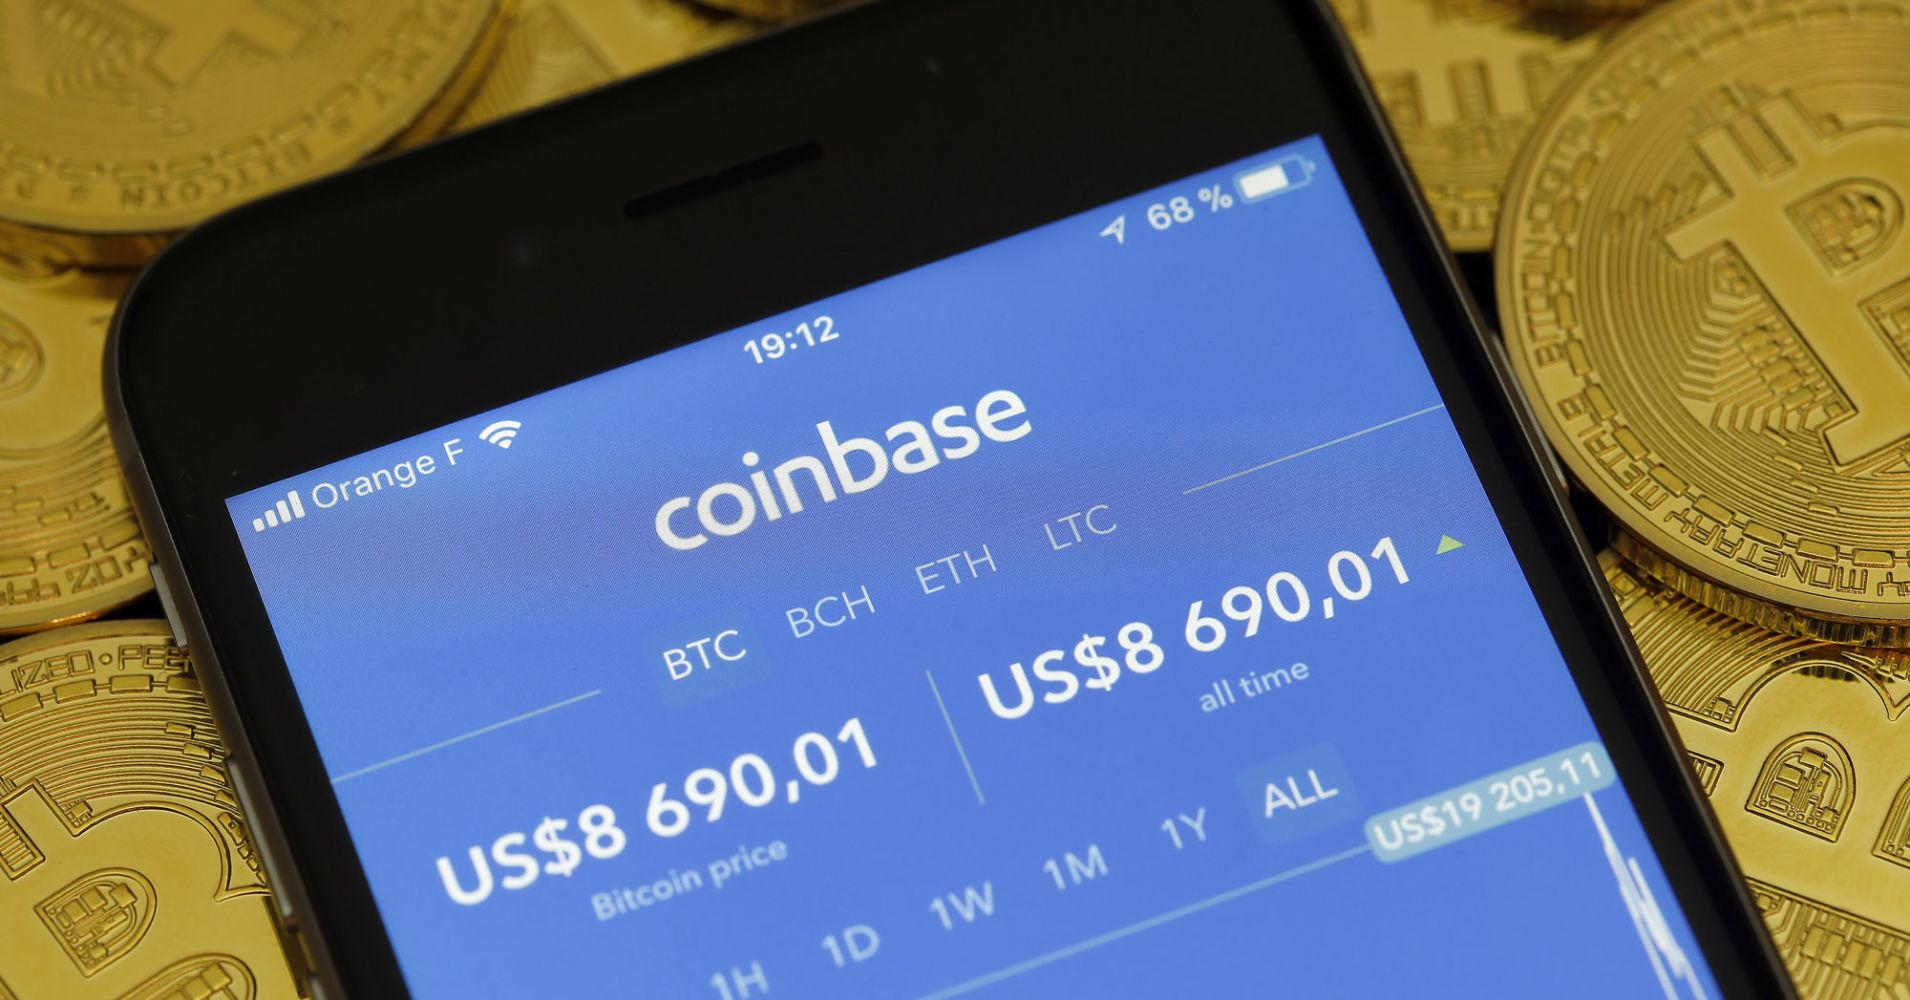 Does coinbase limit which cryptocurrencies